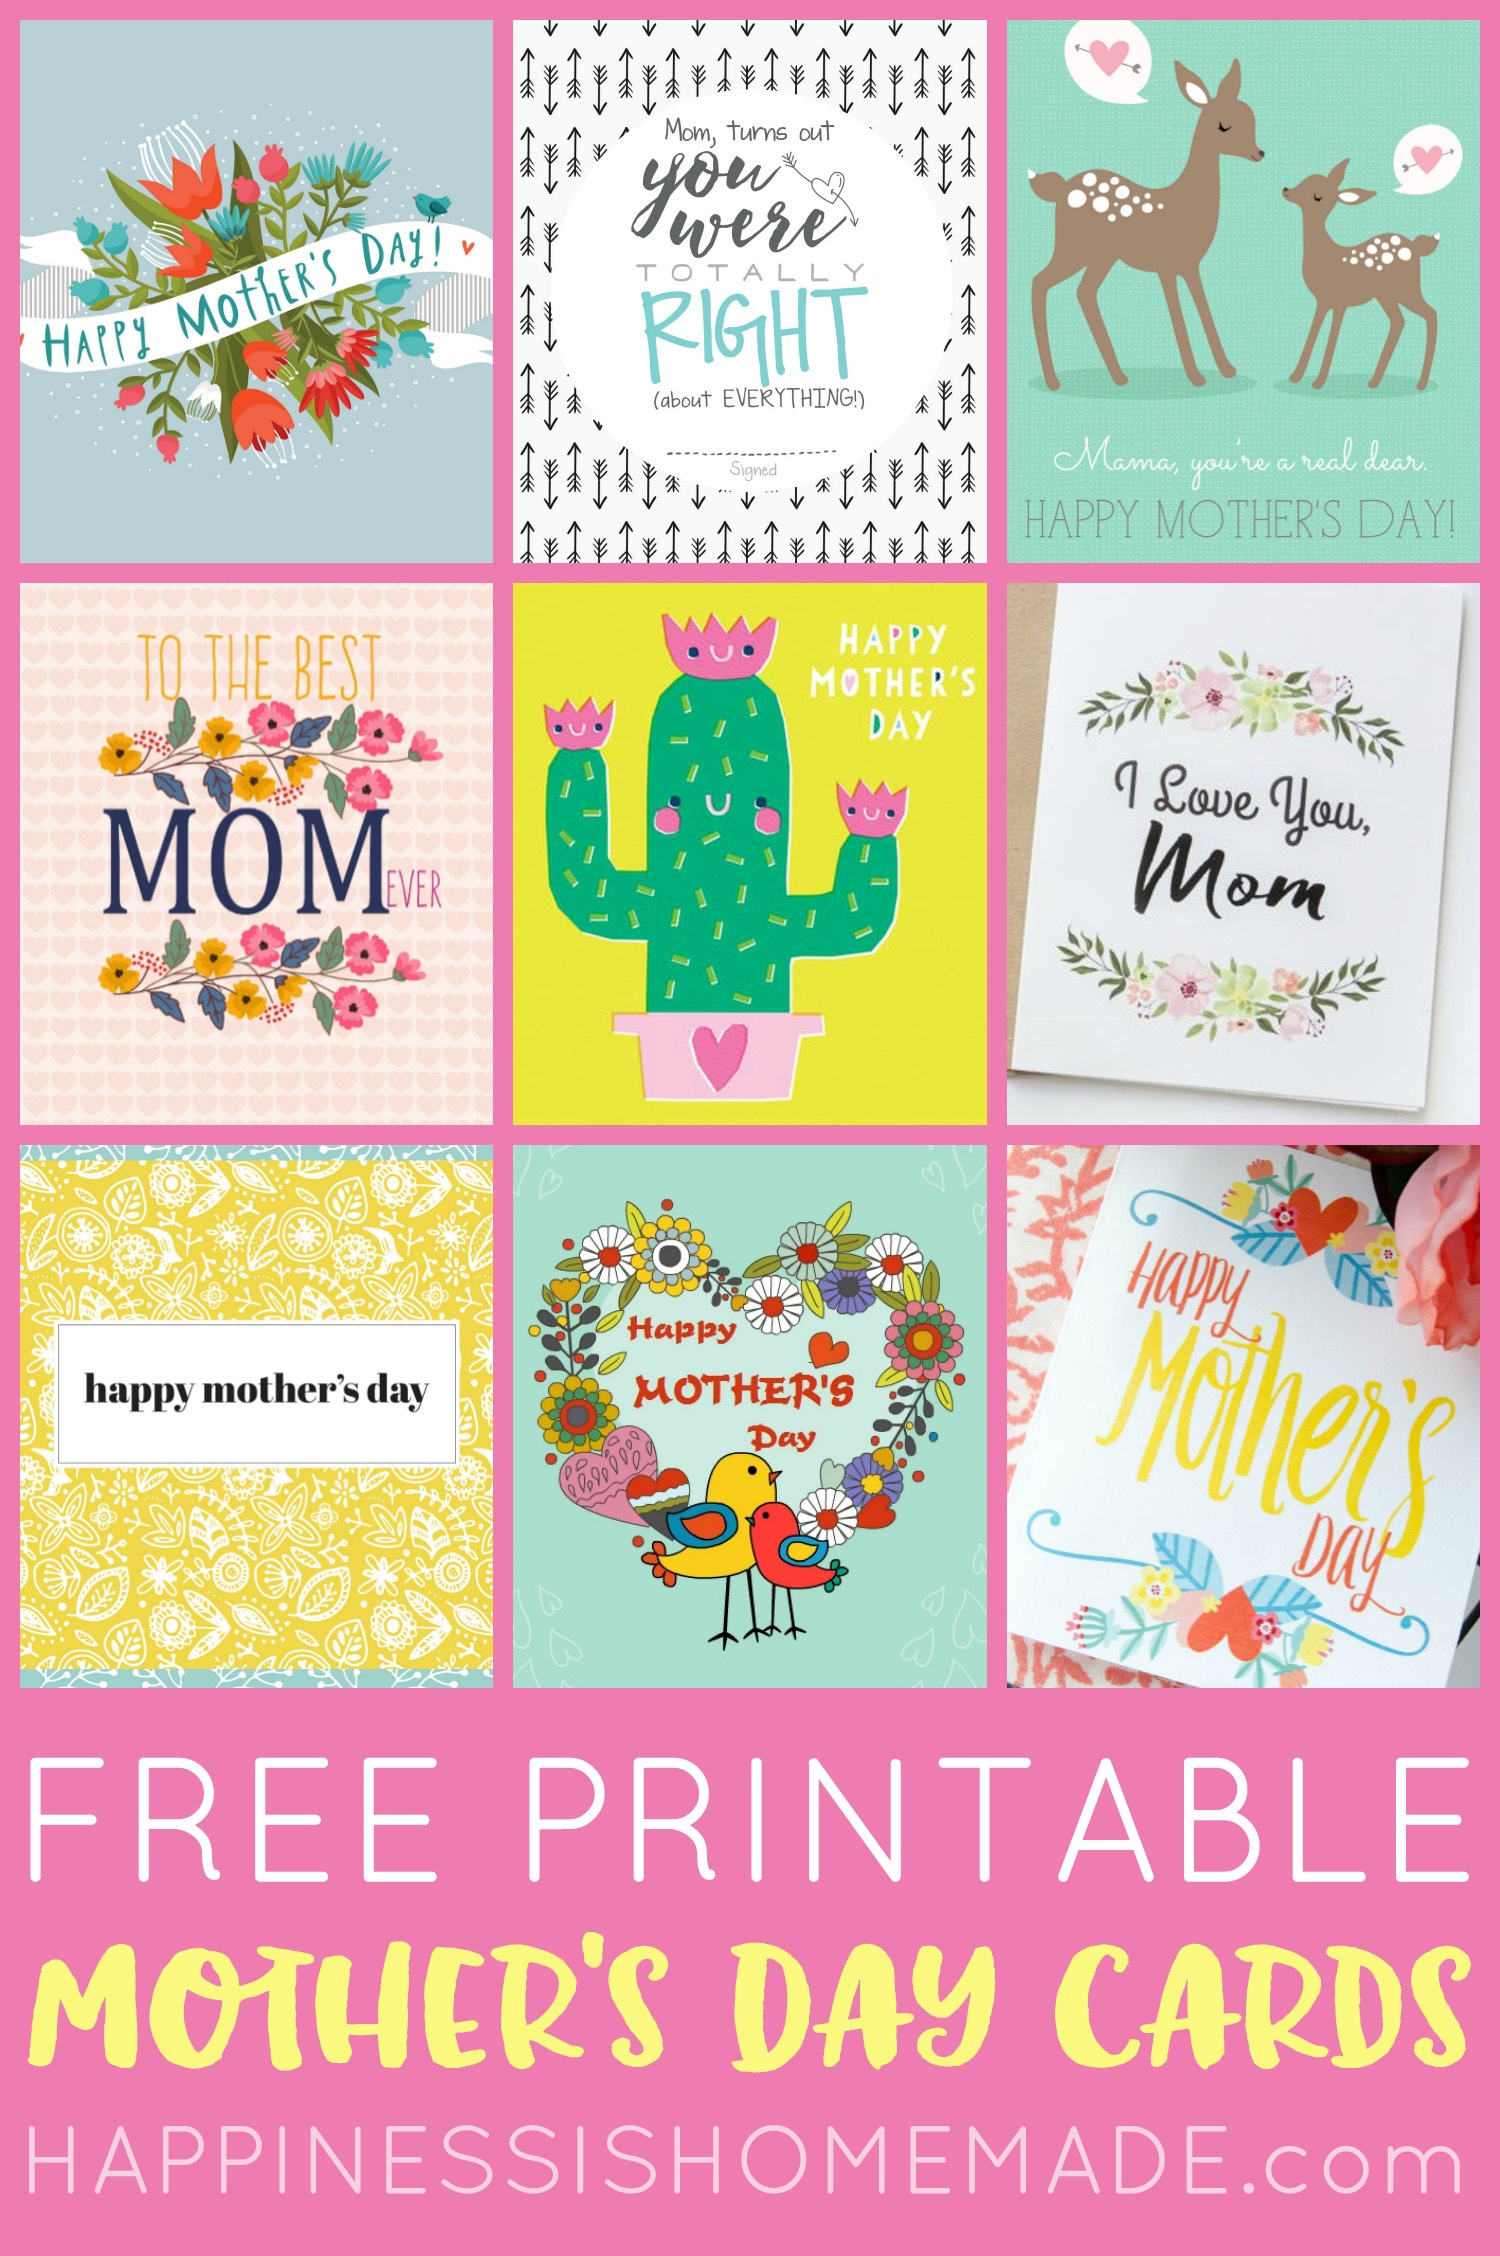 Free Printable Mother's Day Cards - Happiness Is Homemade - Free Printable Mothers Day Cards